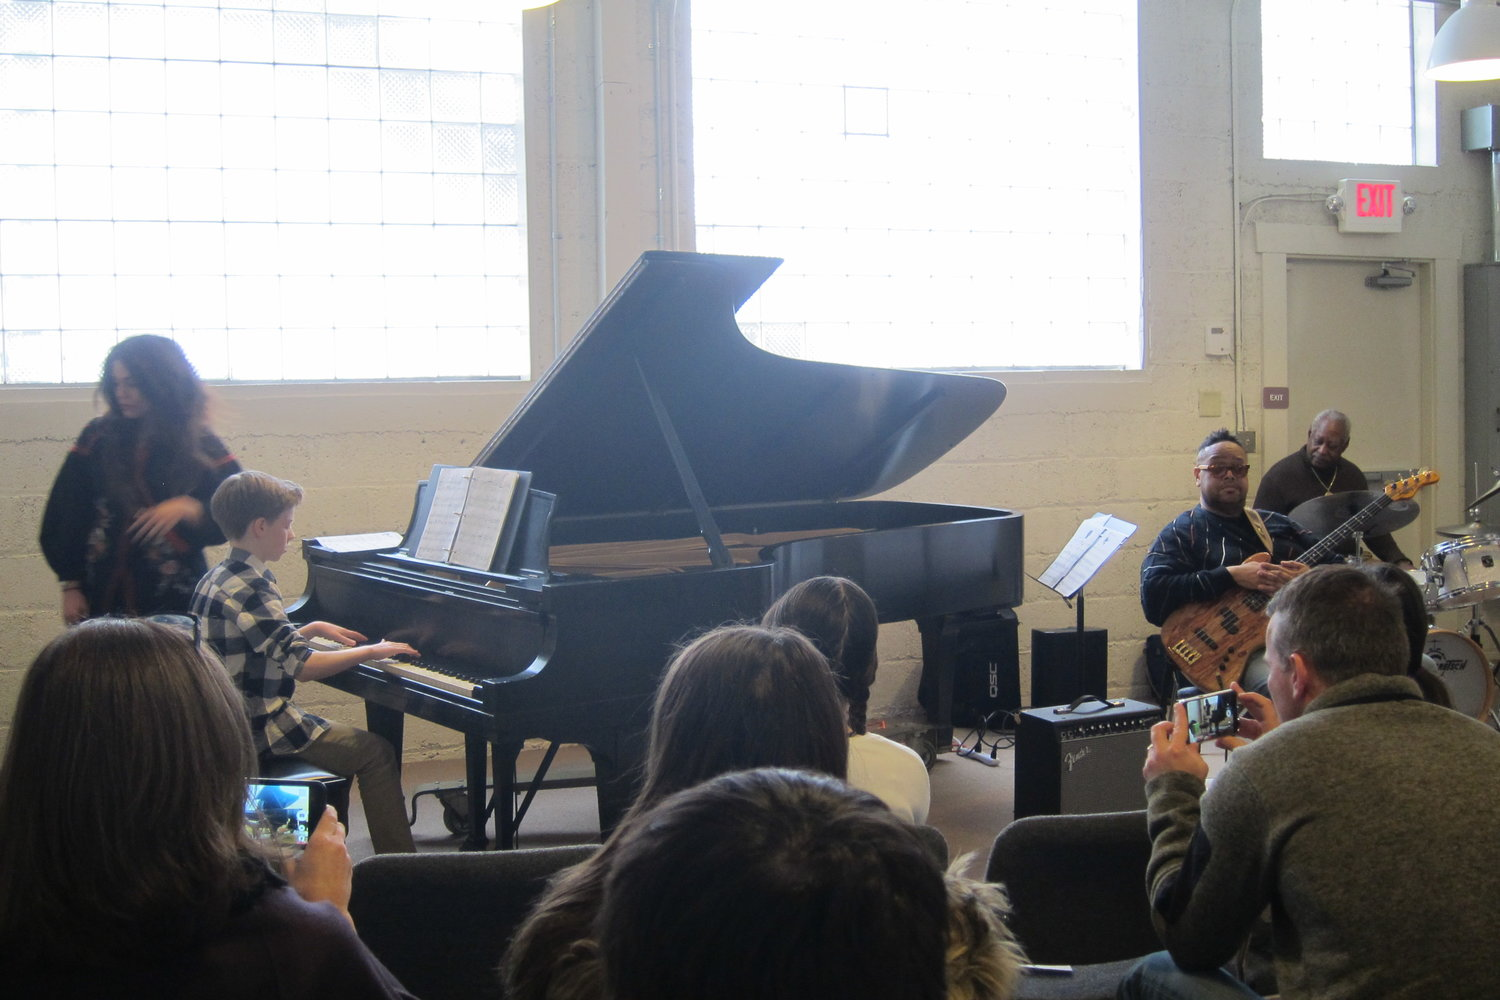 Gabi Gotz enjoyed jamming with Roger Humphries and friends at the Jazz workshop